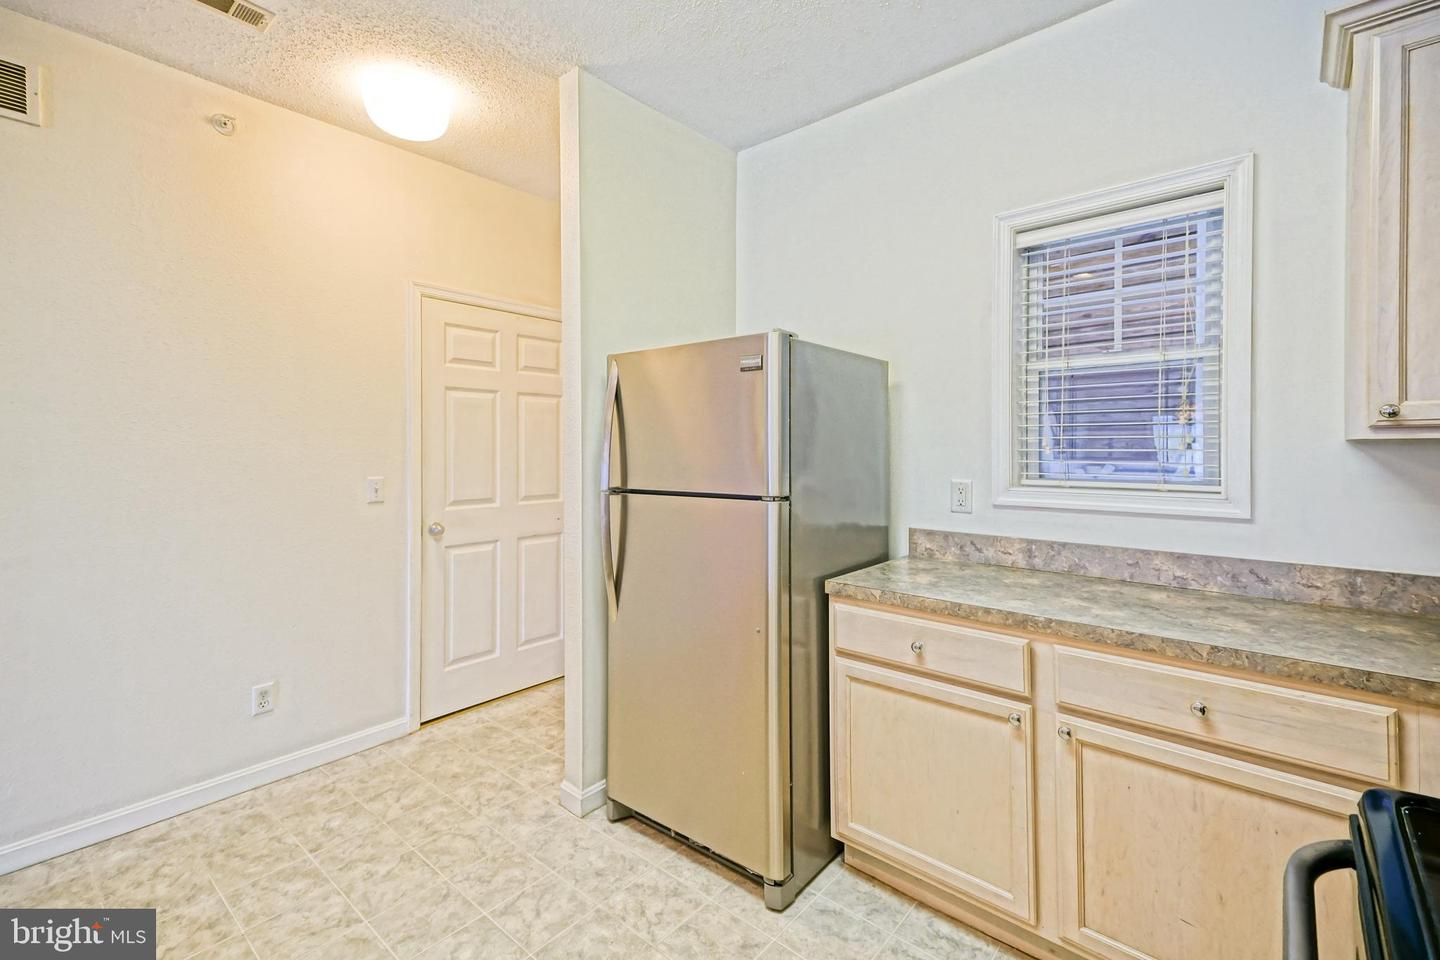 DESU139032-301664482682-2019-06-24-14-51-56 33156 N Village Loop #4202 | Lewes, DE Real Estate For Sale | MLS# Desu139032  - Lee Ann Group